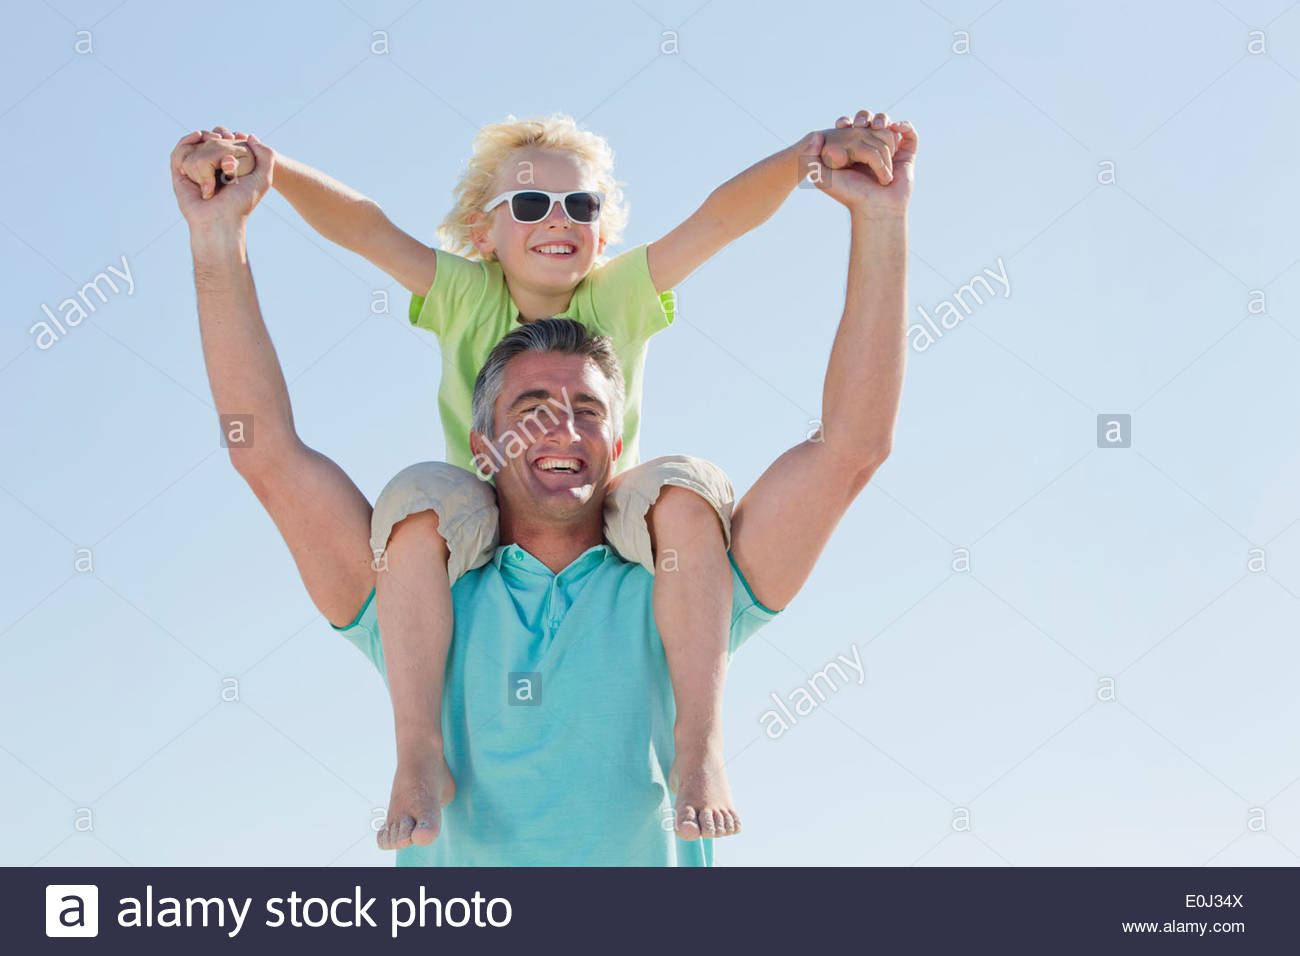 Happy father carrying son on shoulders Photo Stock